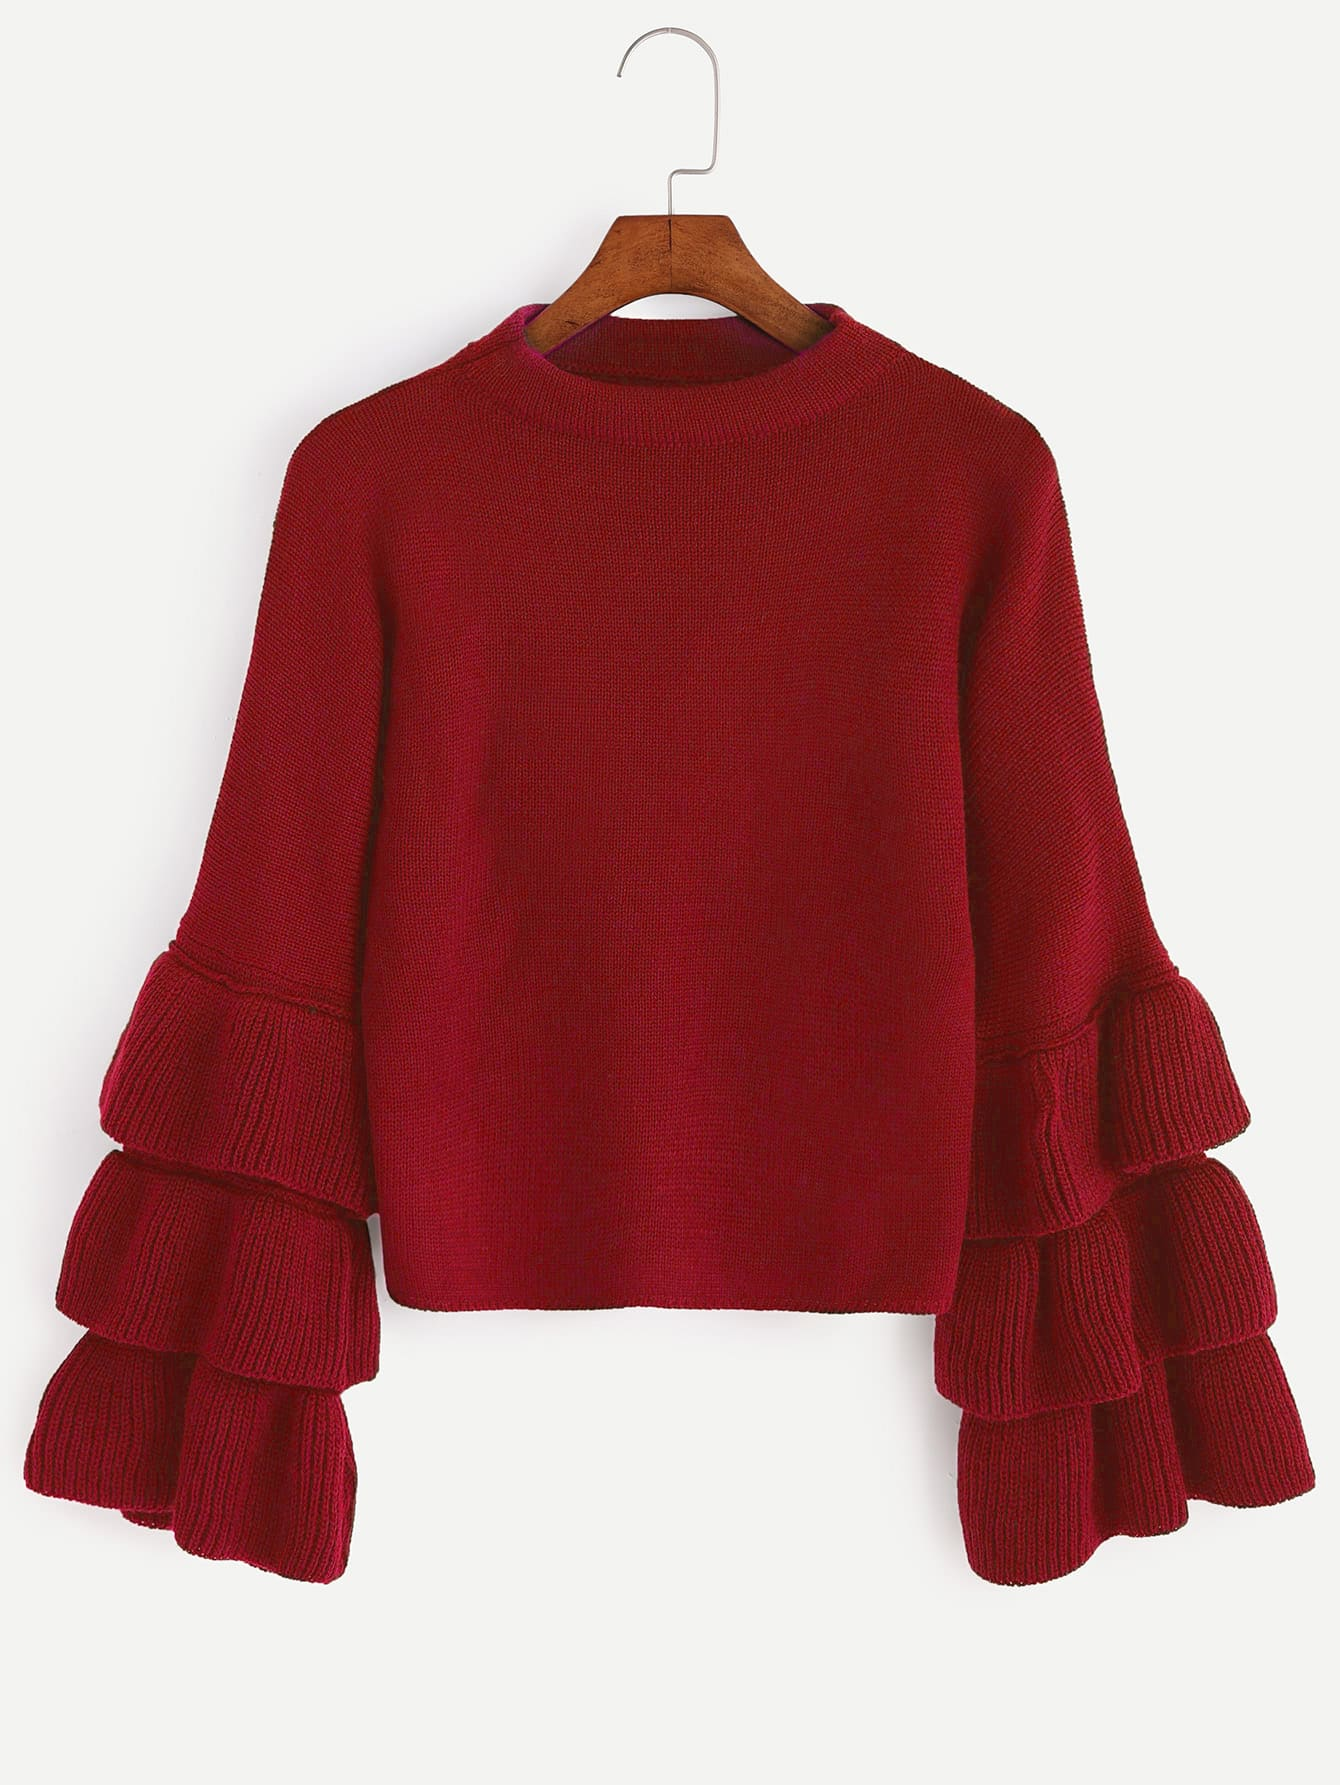 Red Layered Bell Sleeve SweaterRed Layered Bell Sleeve Sweater<br><br>color: Red<br>size: one-size